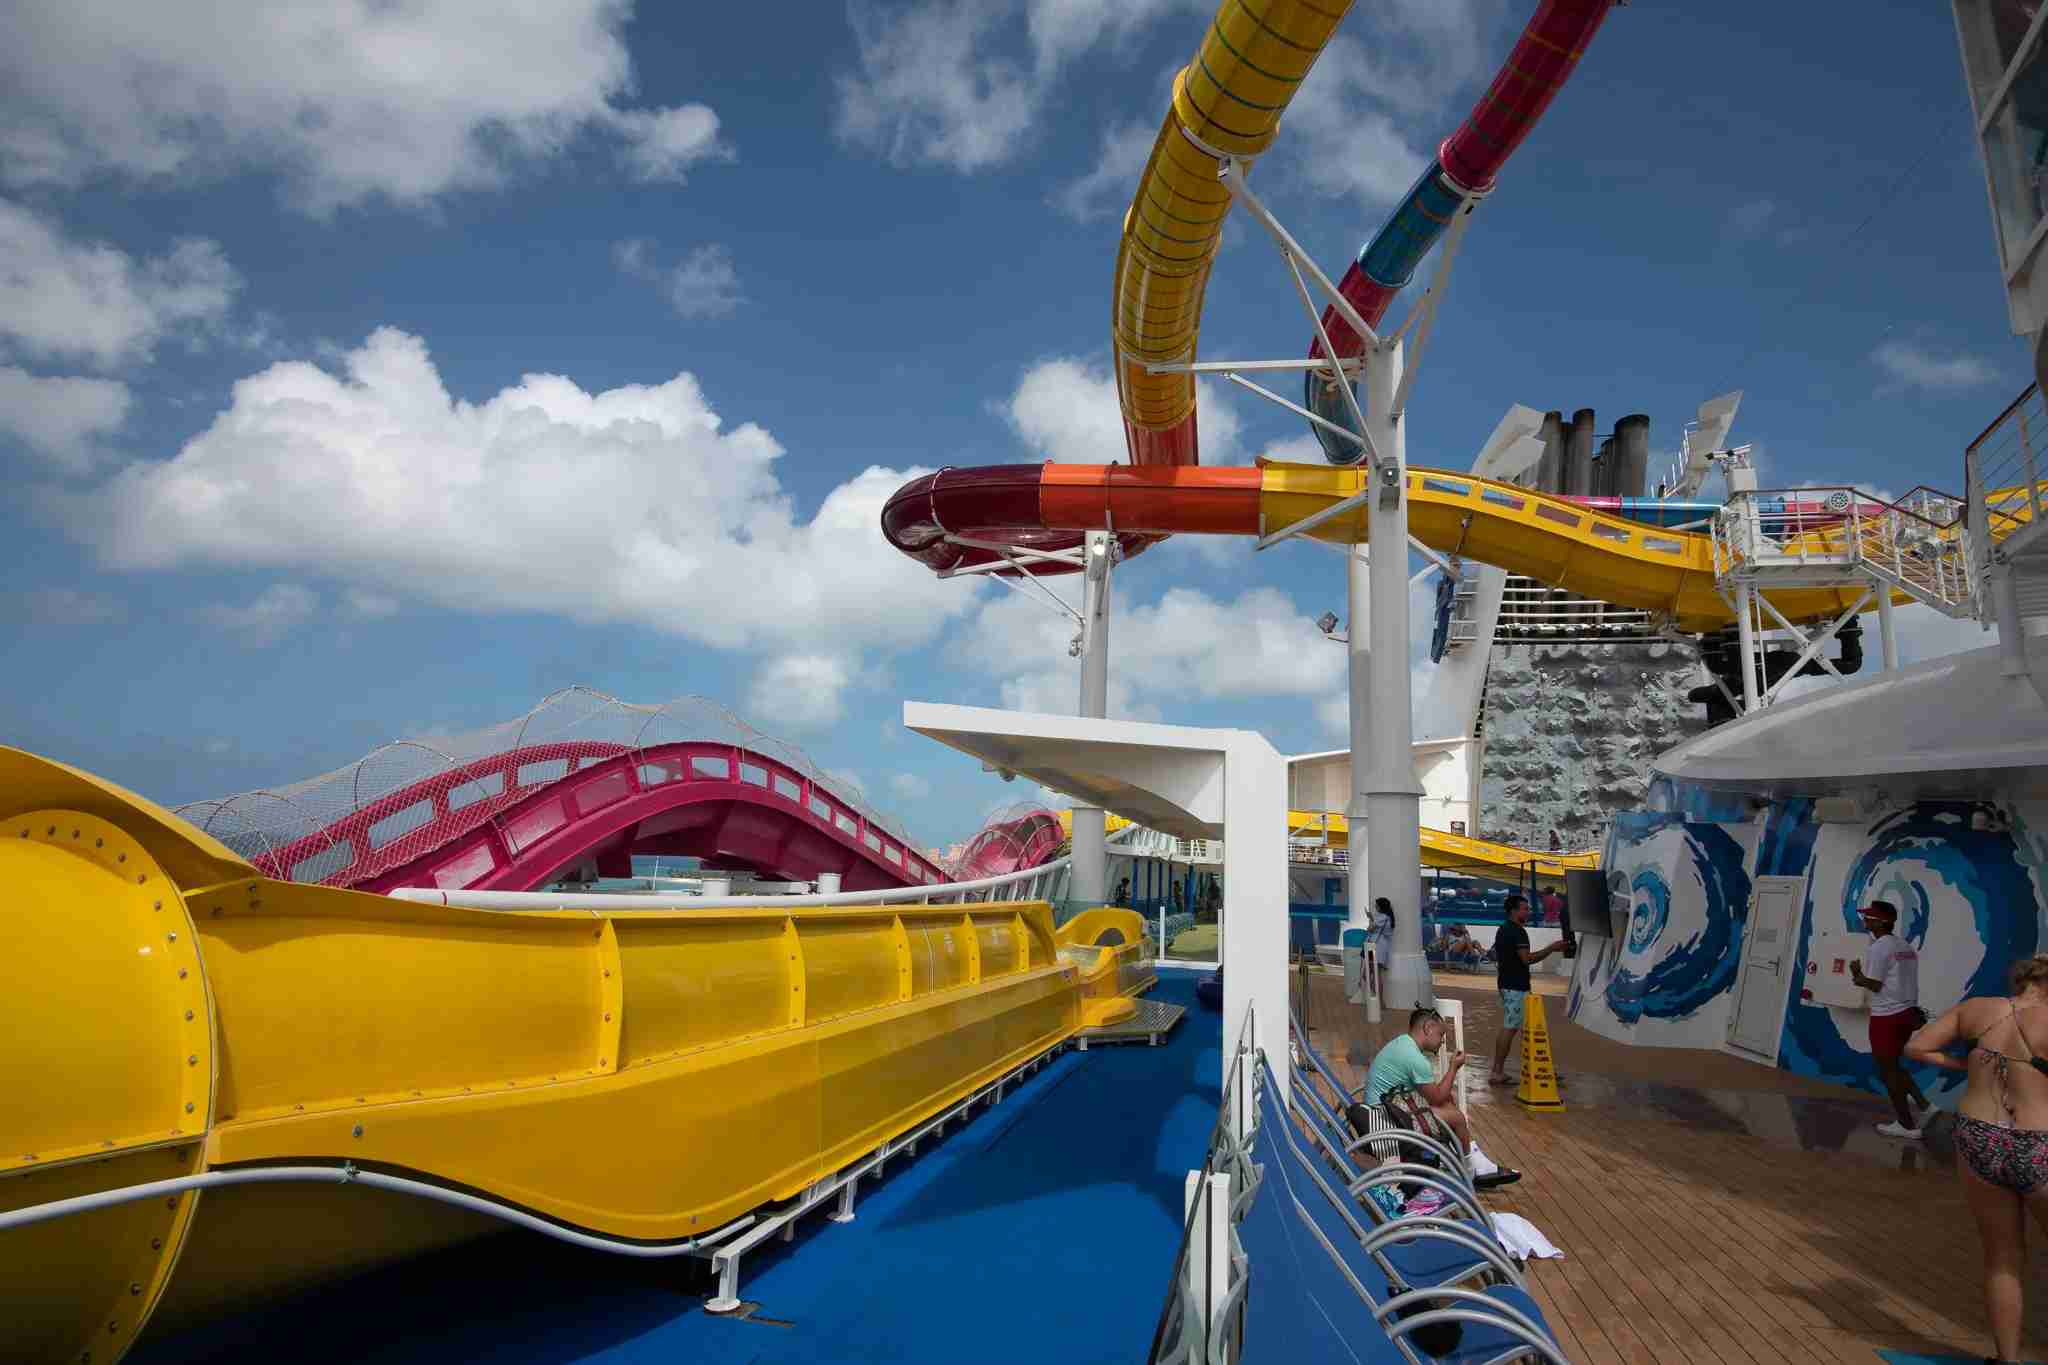 The Blaster water slide and Riptide, a mat racer slide, intertwine along the top deck of Royal Caribbean